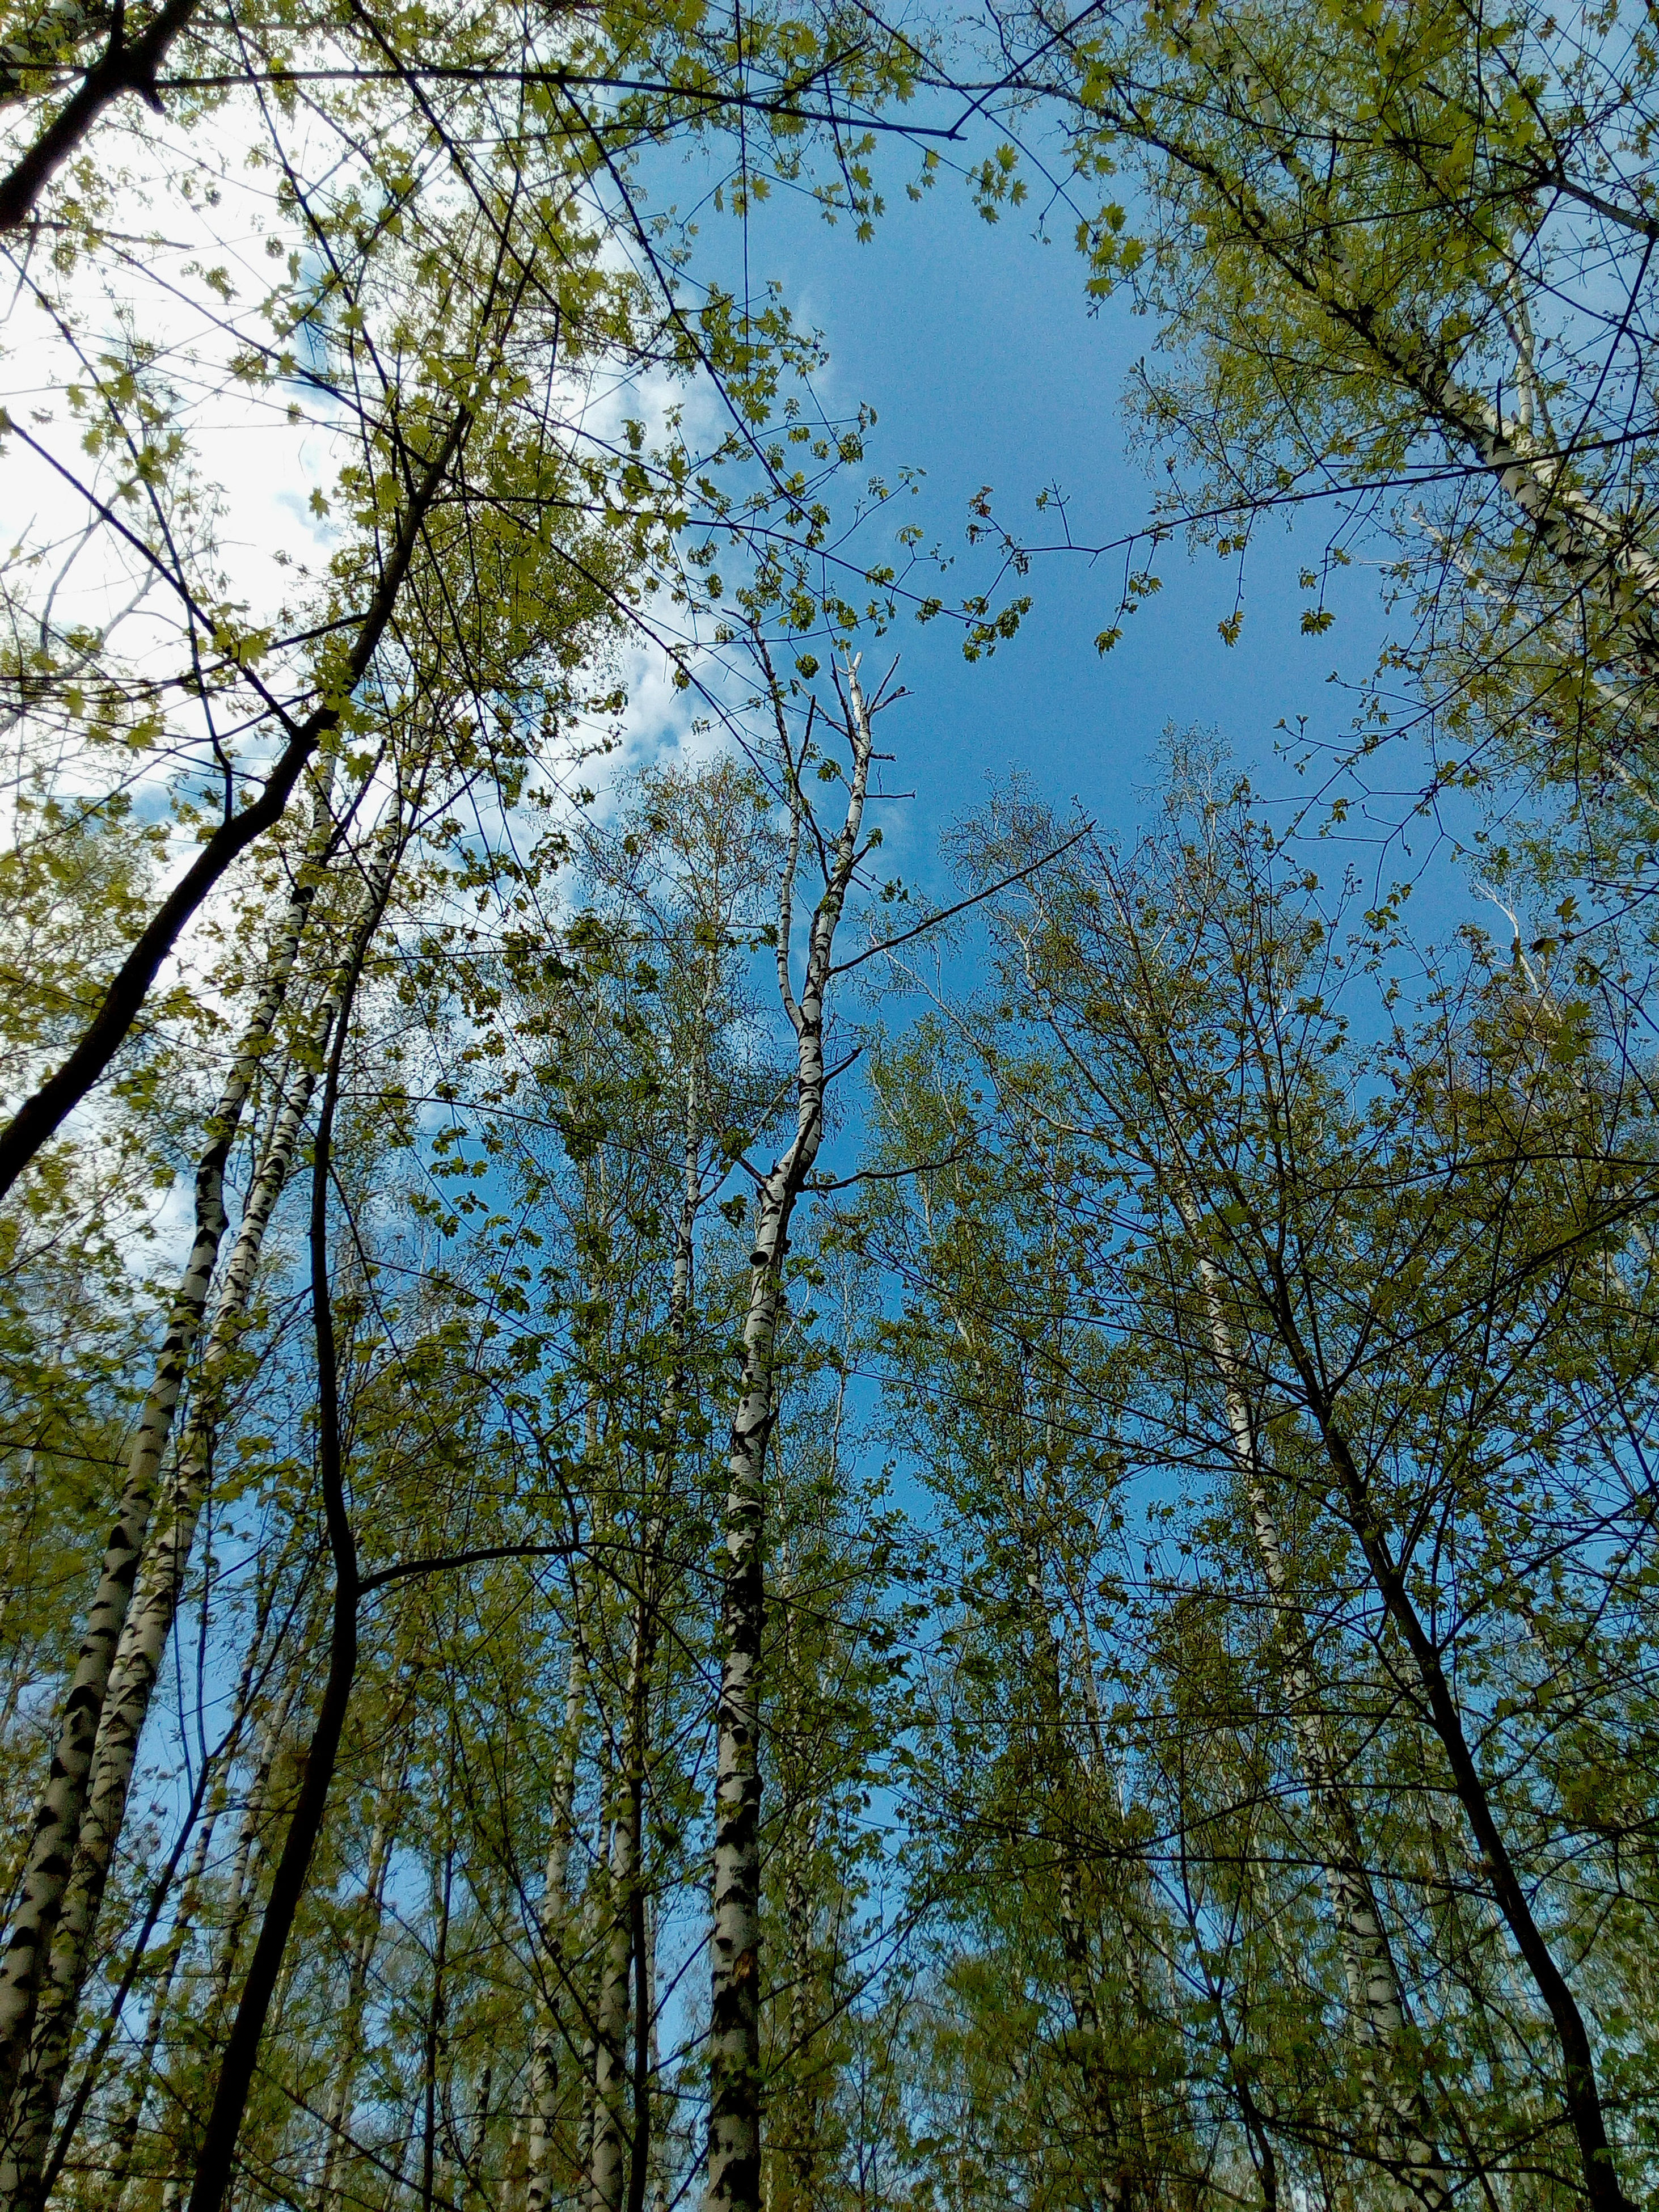 low angle view, tree, growth, branch, clear sky, scenics, nature, beauty in nature, forest, blue, tranquility, sky, tree trunk, tranquil scene, day, tall, woodland, non-urban scene, tall - high, outdoors, full frame, green color, tree canopy, green, high section, treetop